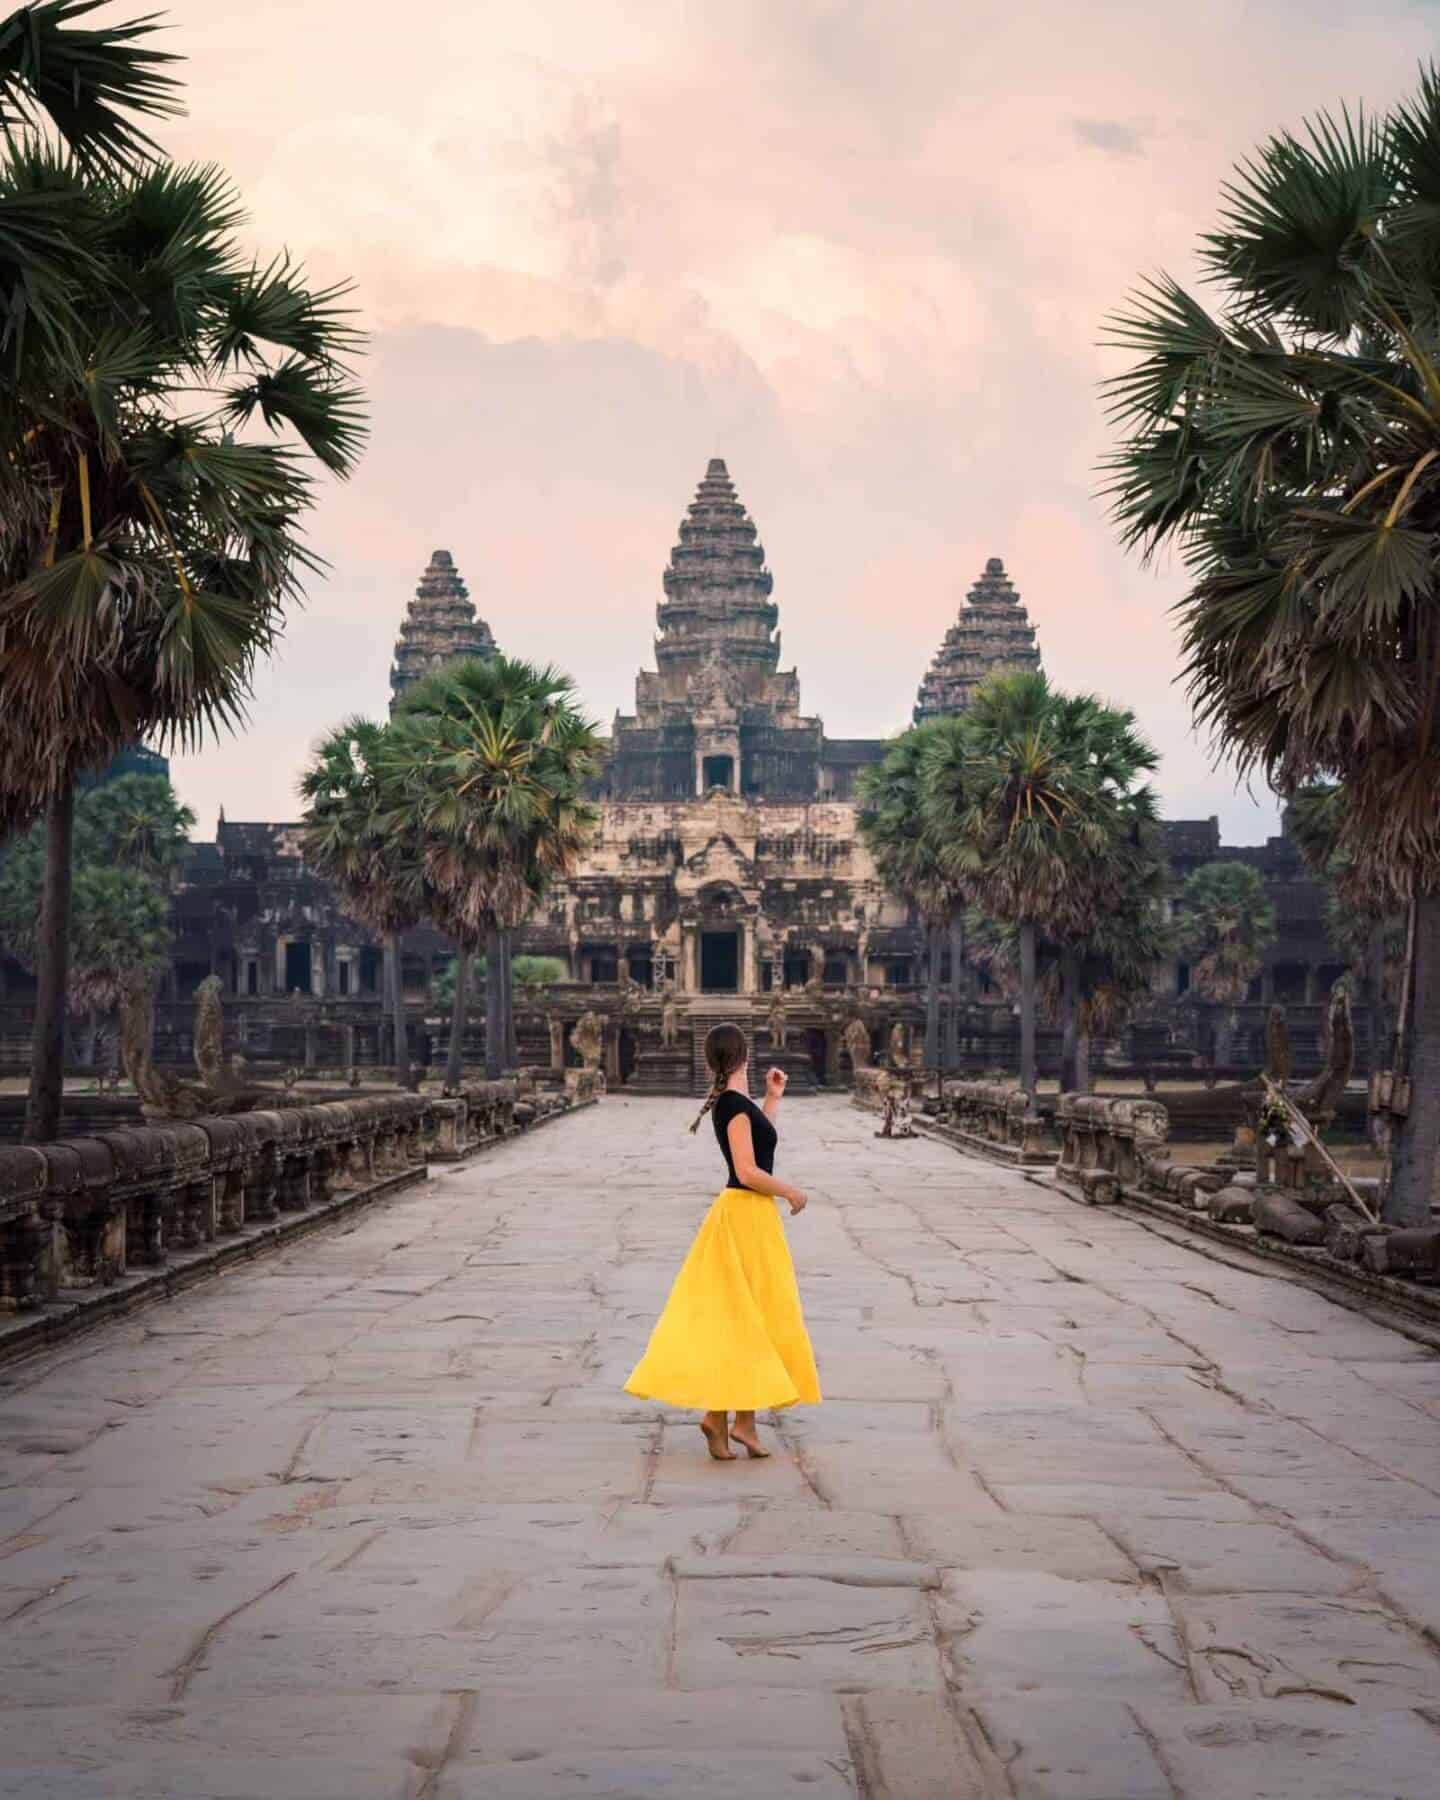 A sunset photo of the Angkor Wat Temple featuring @travelsofsophie in a bright yellow dress.